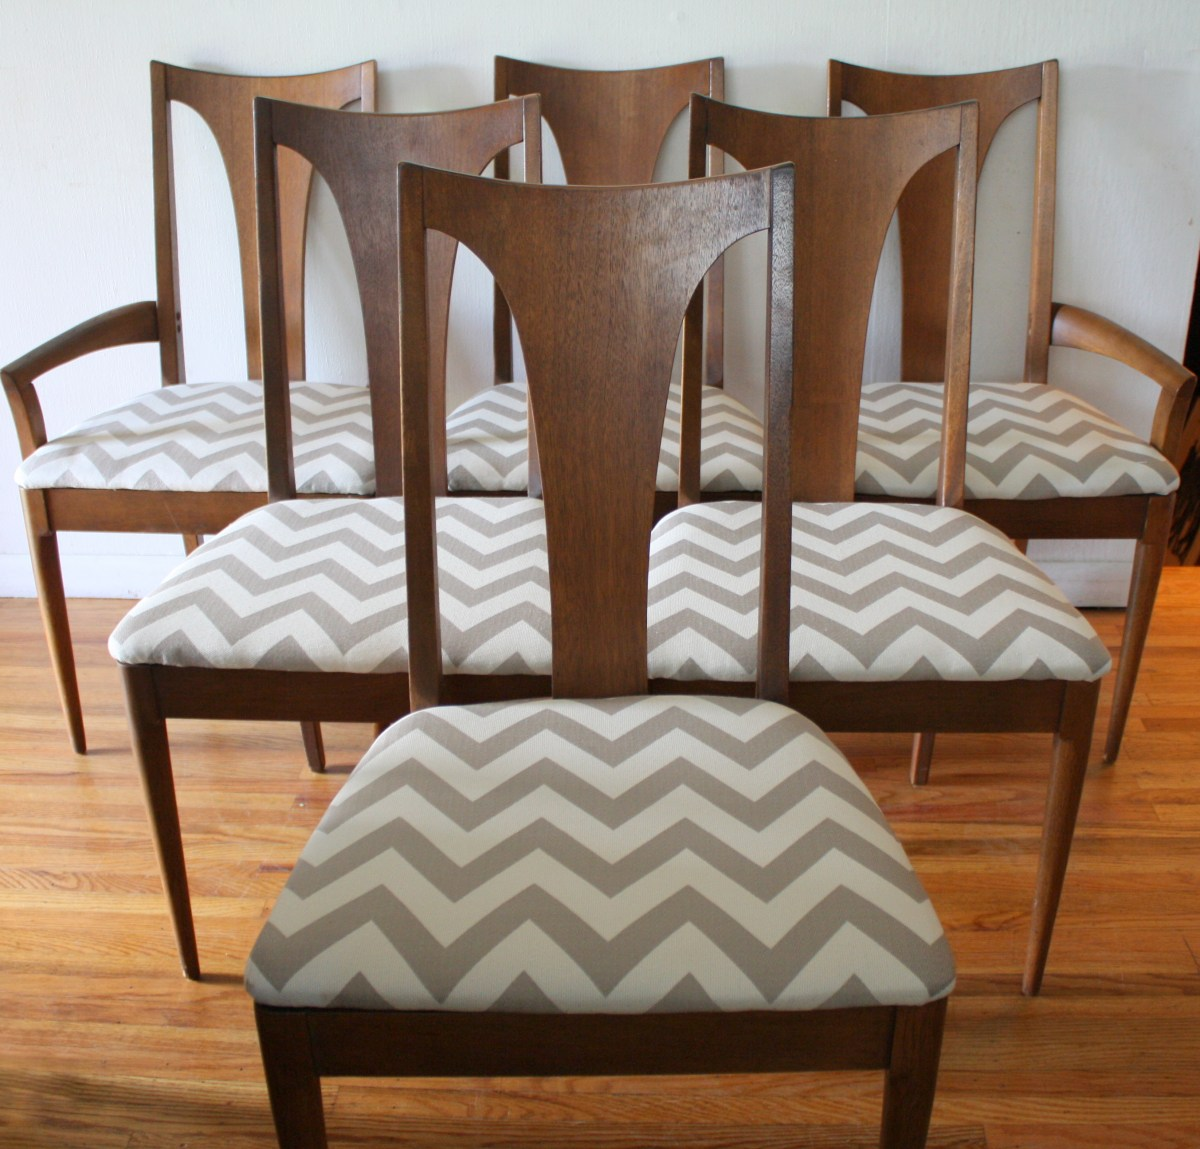 Mid Century Modern Dining Chair Mid Century Modern Dining Chair Set From The Broyhill